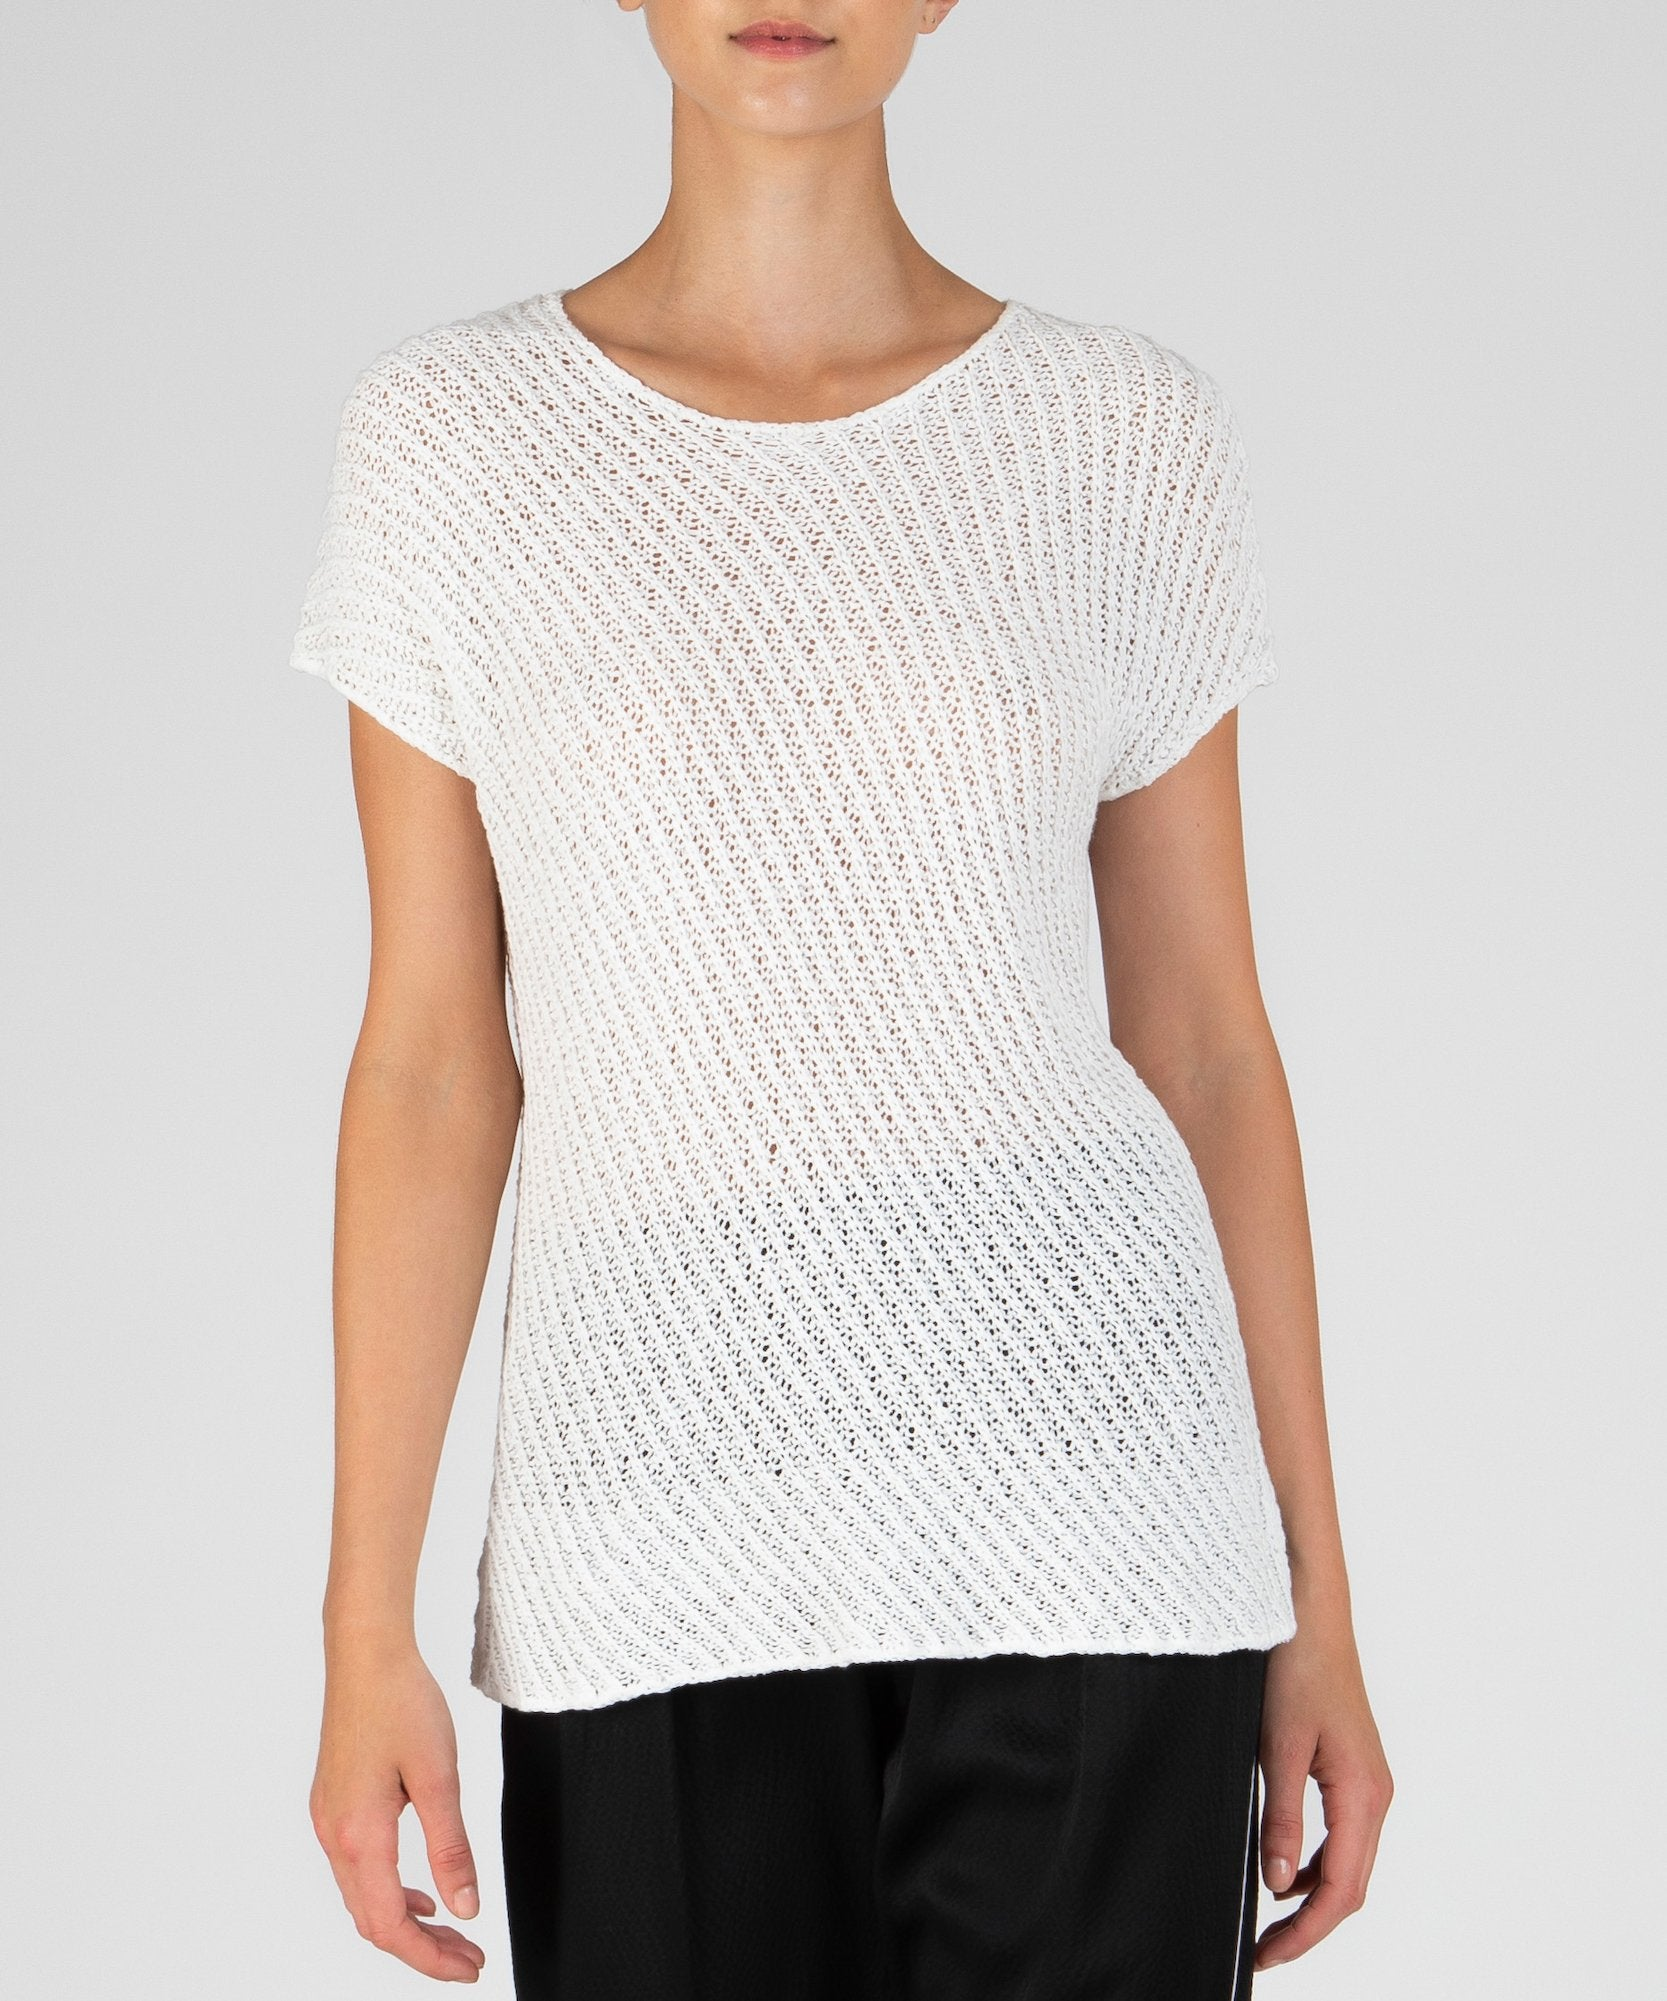 Chalk Diagonal Stitch Pullover Sweater - Women's Luxe Sweater by ATM Anthony Thomas Melillo